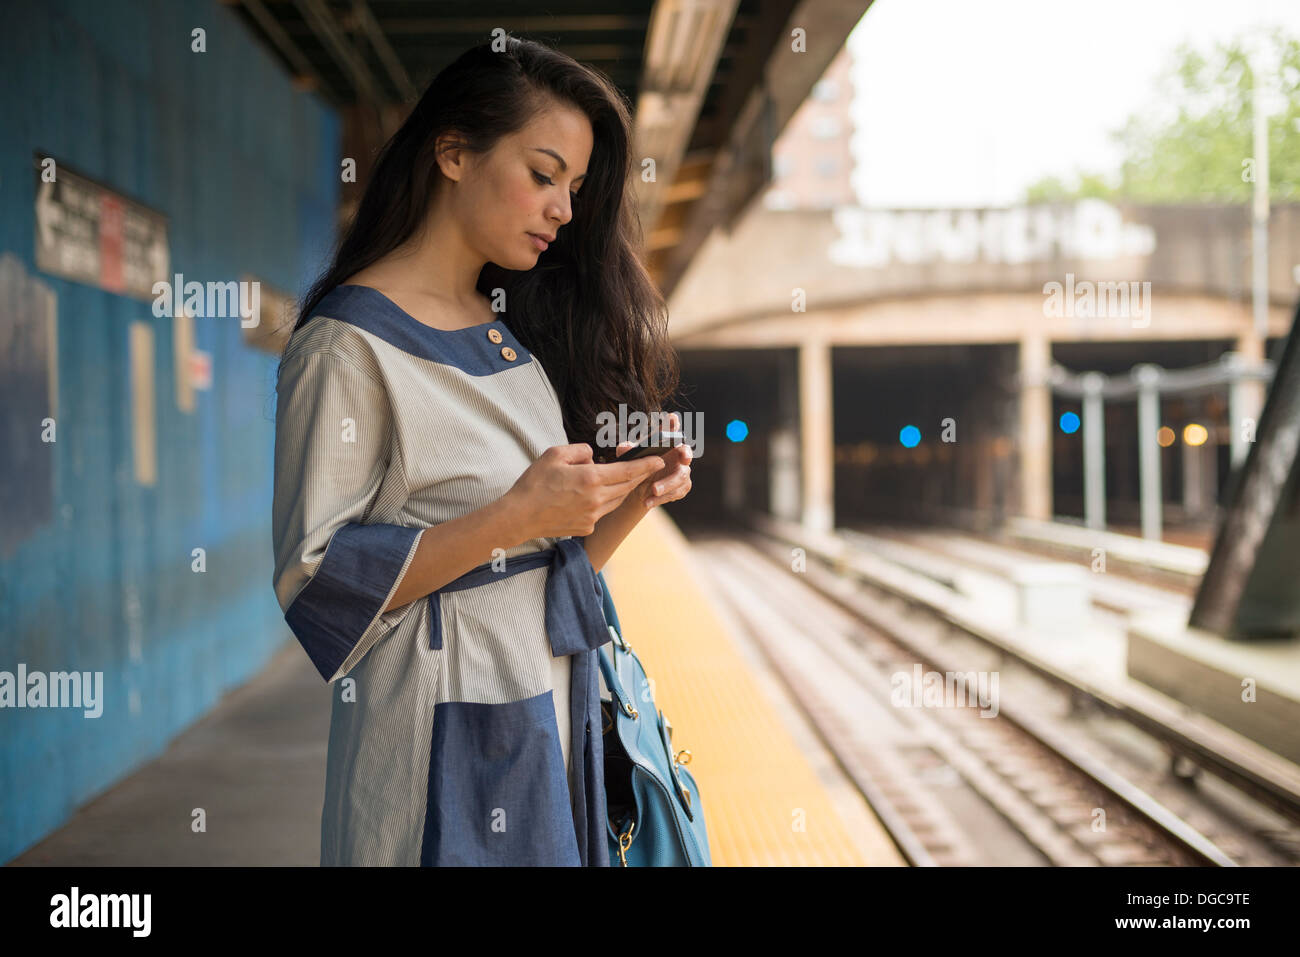 Mid adult women using mobile phone on subway platform, Brooklyn, New York - Stock Image